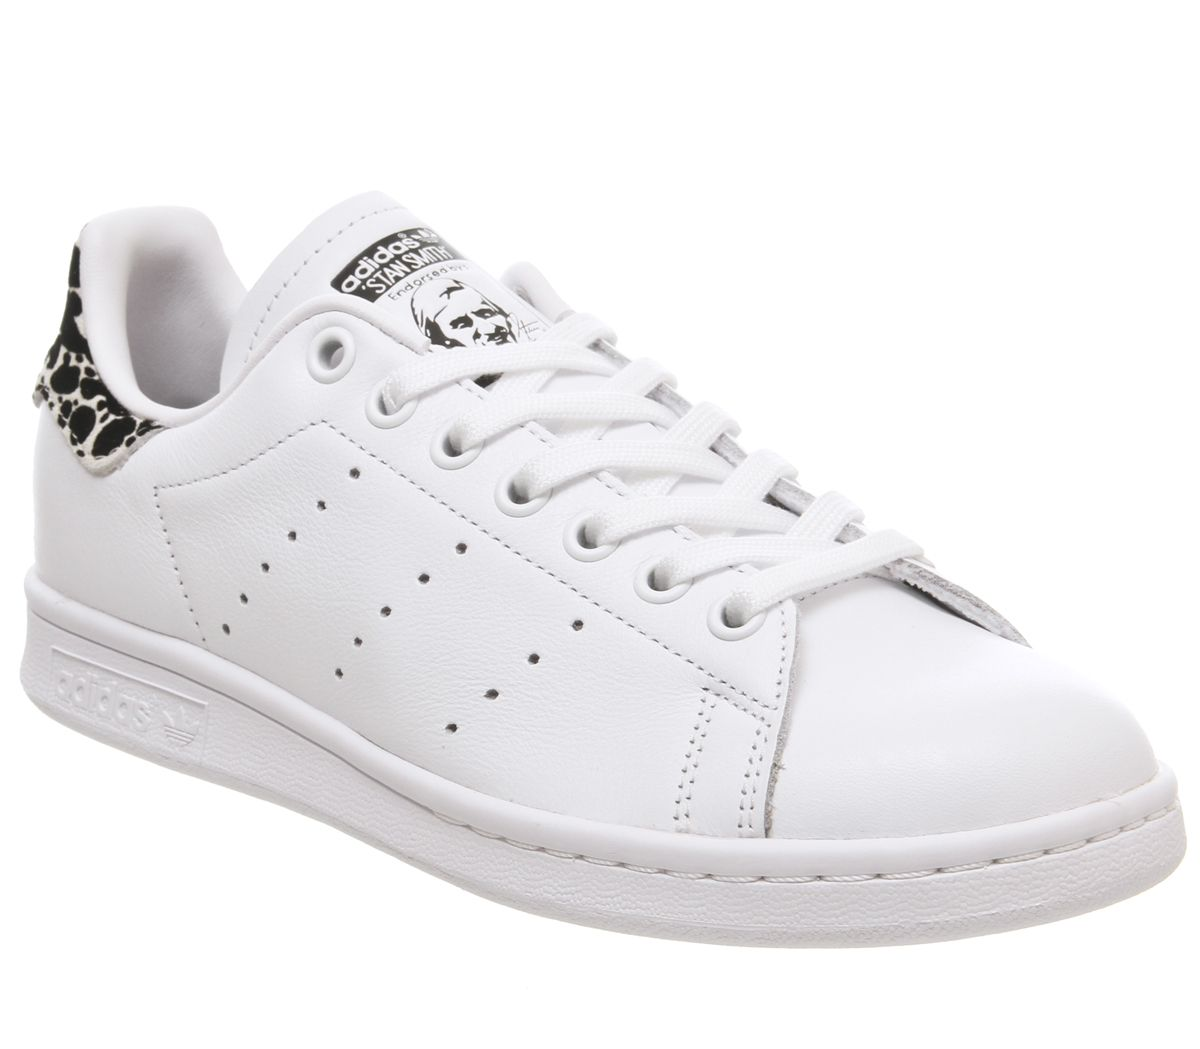 acheter populaire a0db6 3f671 adidas Stan Smith Trainers Off White Core Black Shock Pink ...